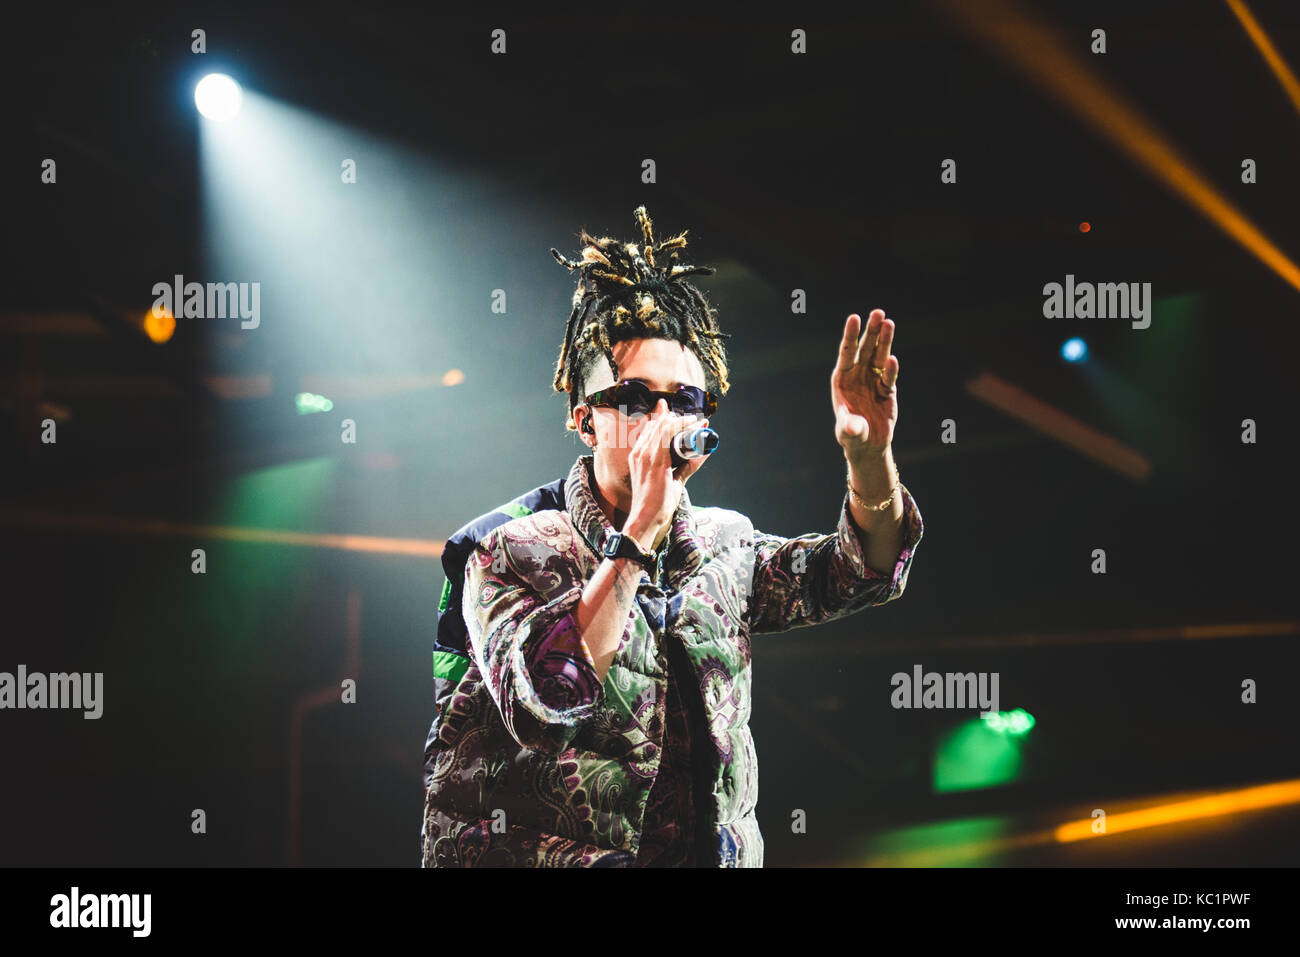 Torino, Italy. 30th Sep, 2017: The italian rapper Ghali performing live on stage at the Officine grandi Riparazioni Stock Photo